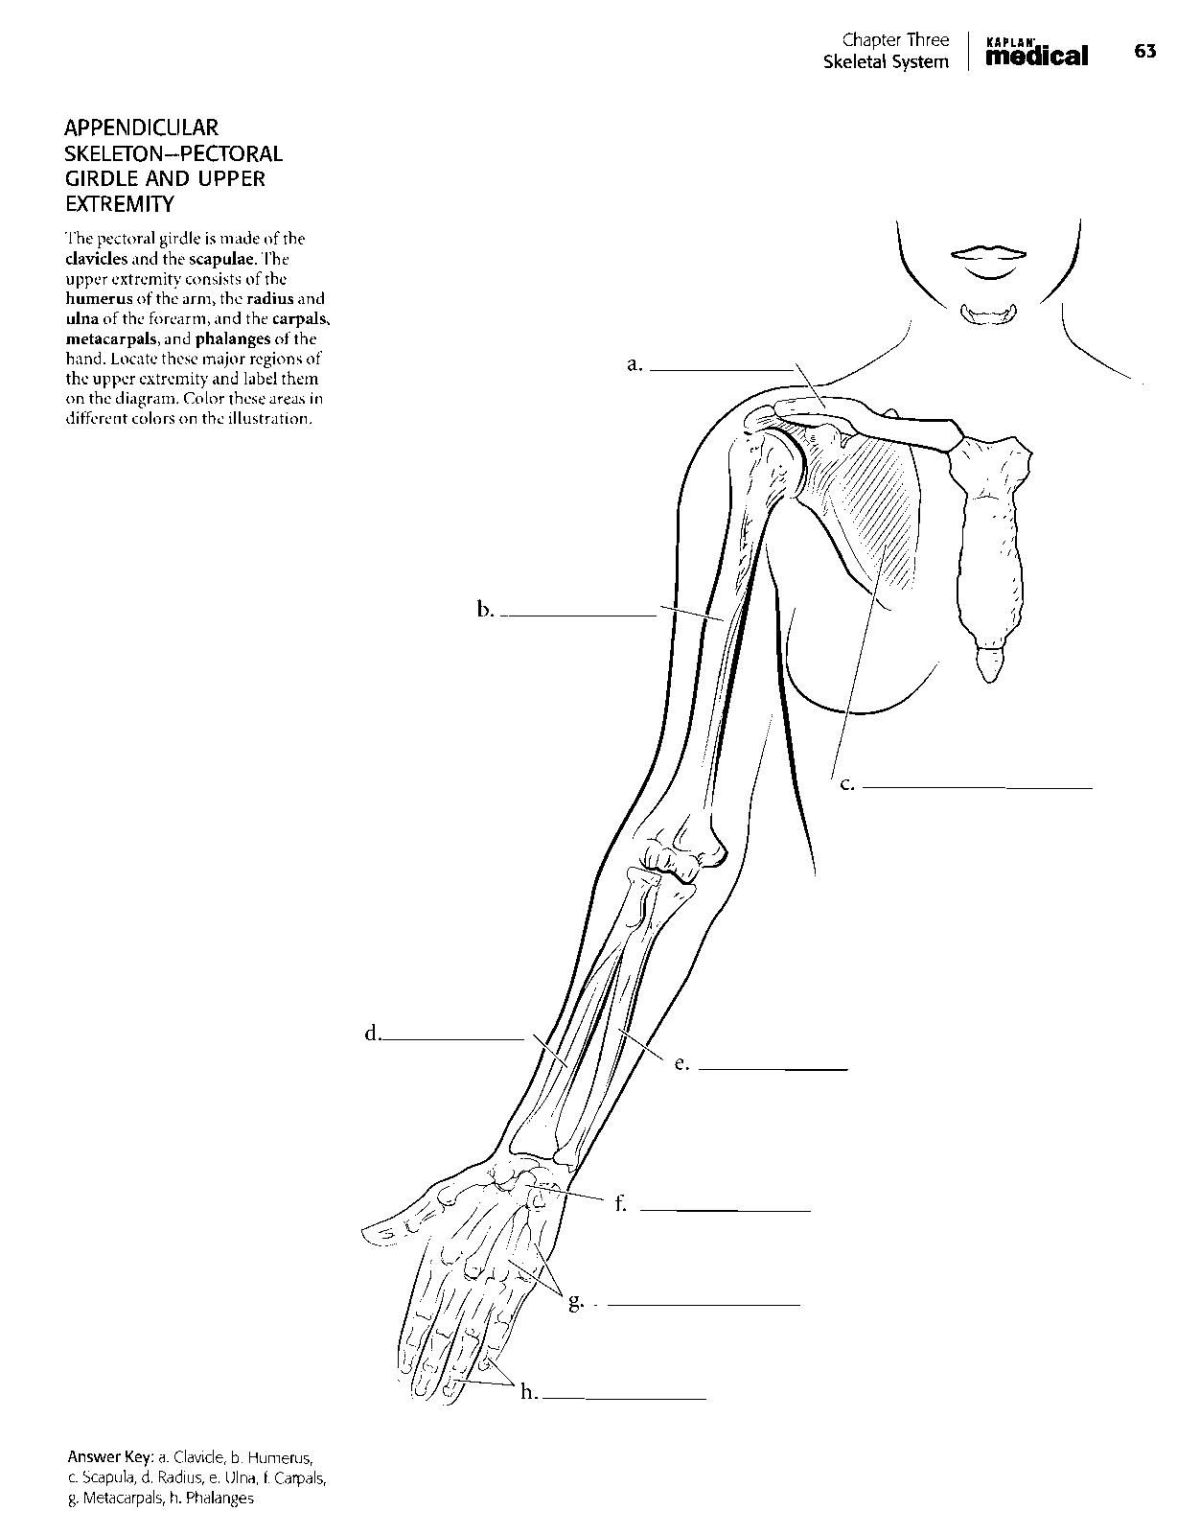 The Anatomy Coloring Book Pdf Wynn Kapit | Fun Coloring Pages